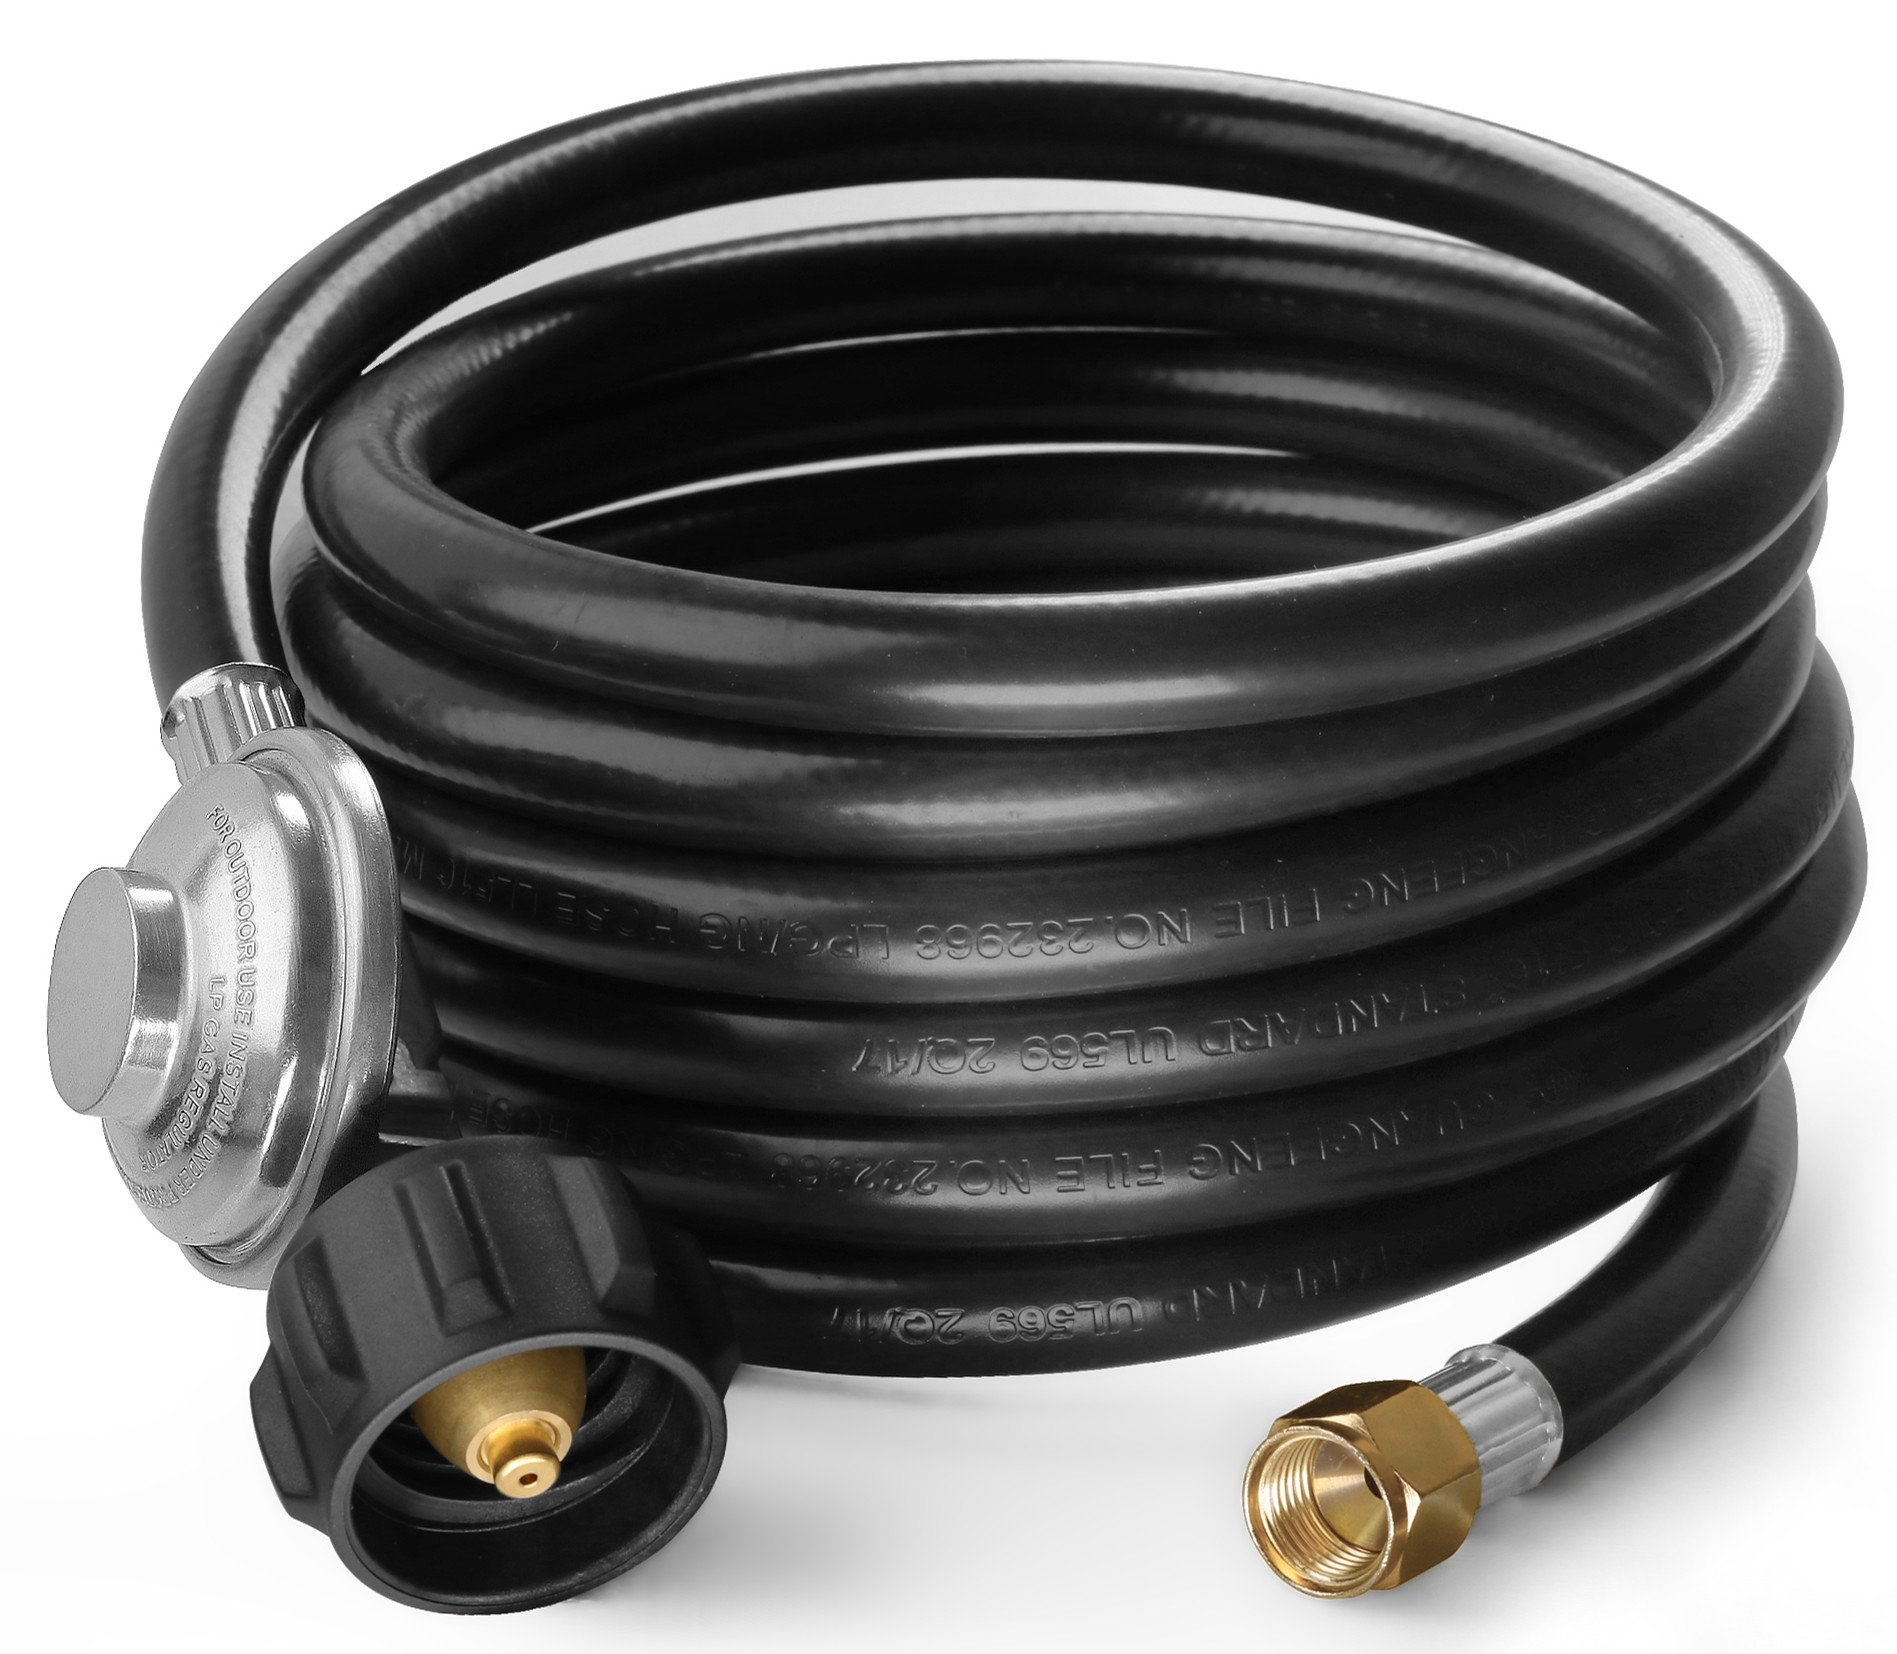 DOZYANT 12 Feet Universal QCC1 Low Pressure Propane Regulator Grill Replacement with 12 FT Hose for Most LP Gas Grill, Heater and Fire Pit Table, 3/8'' Female Flare Nut